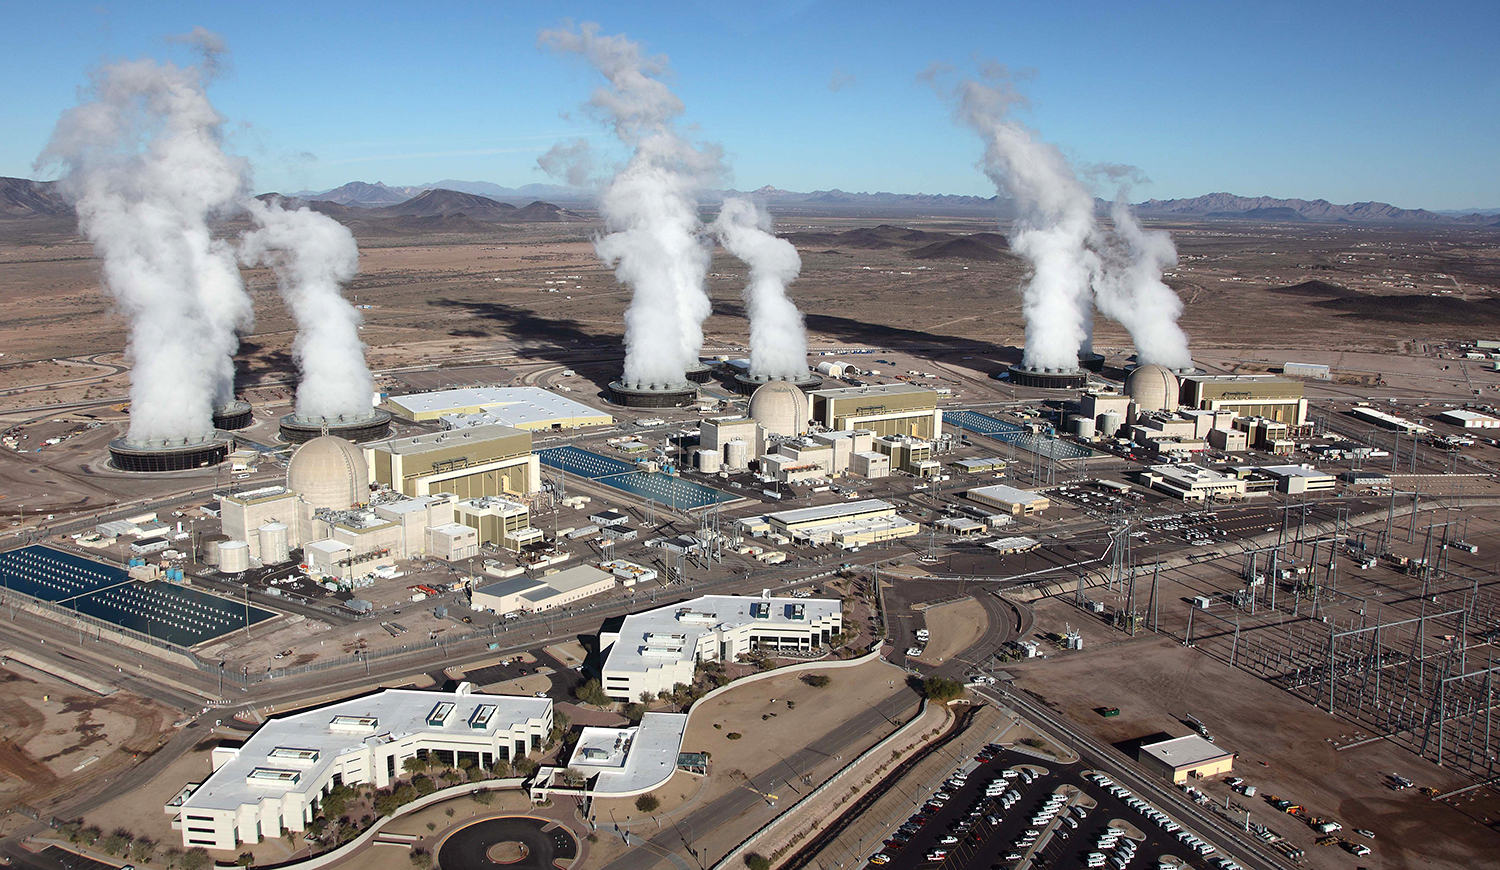 For the 22nd consecutive year, Palo Verde Nuclear Generating Station was the nation's largest power producer, generating 31.4 million megawatt-hours in 2013. With this milestone, Palo Verde remains the only U.S. generating facility to ever produce more than 30 million megawatt-hours in a year - an operational accomplishment the plant has achieved on nine separate occasions. Arizona Public Service Co. is the operator and largest owner of Palo Verde. (Photo: Business Wire)